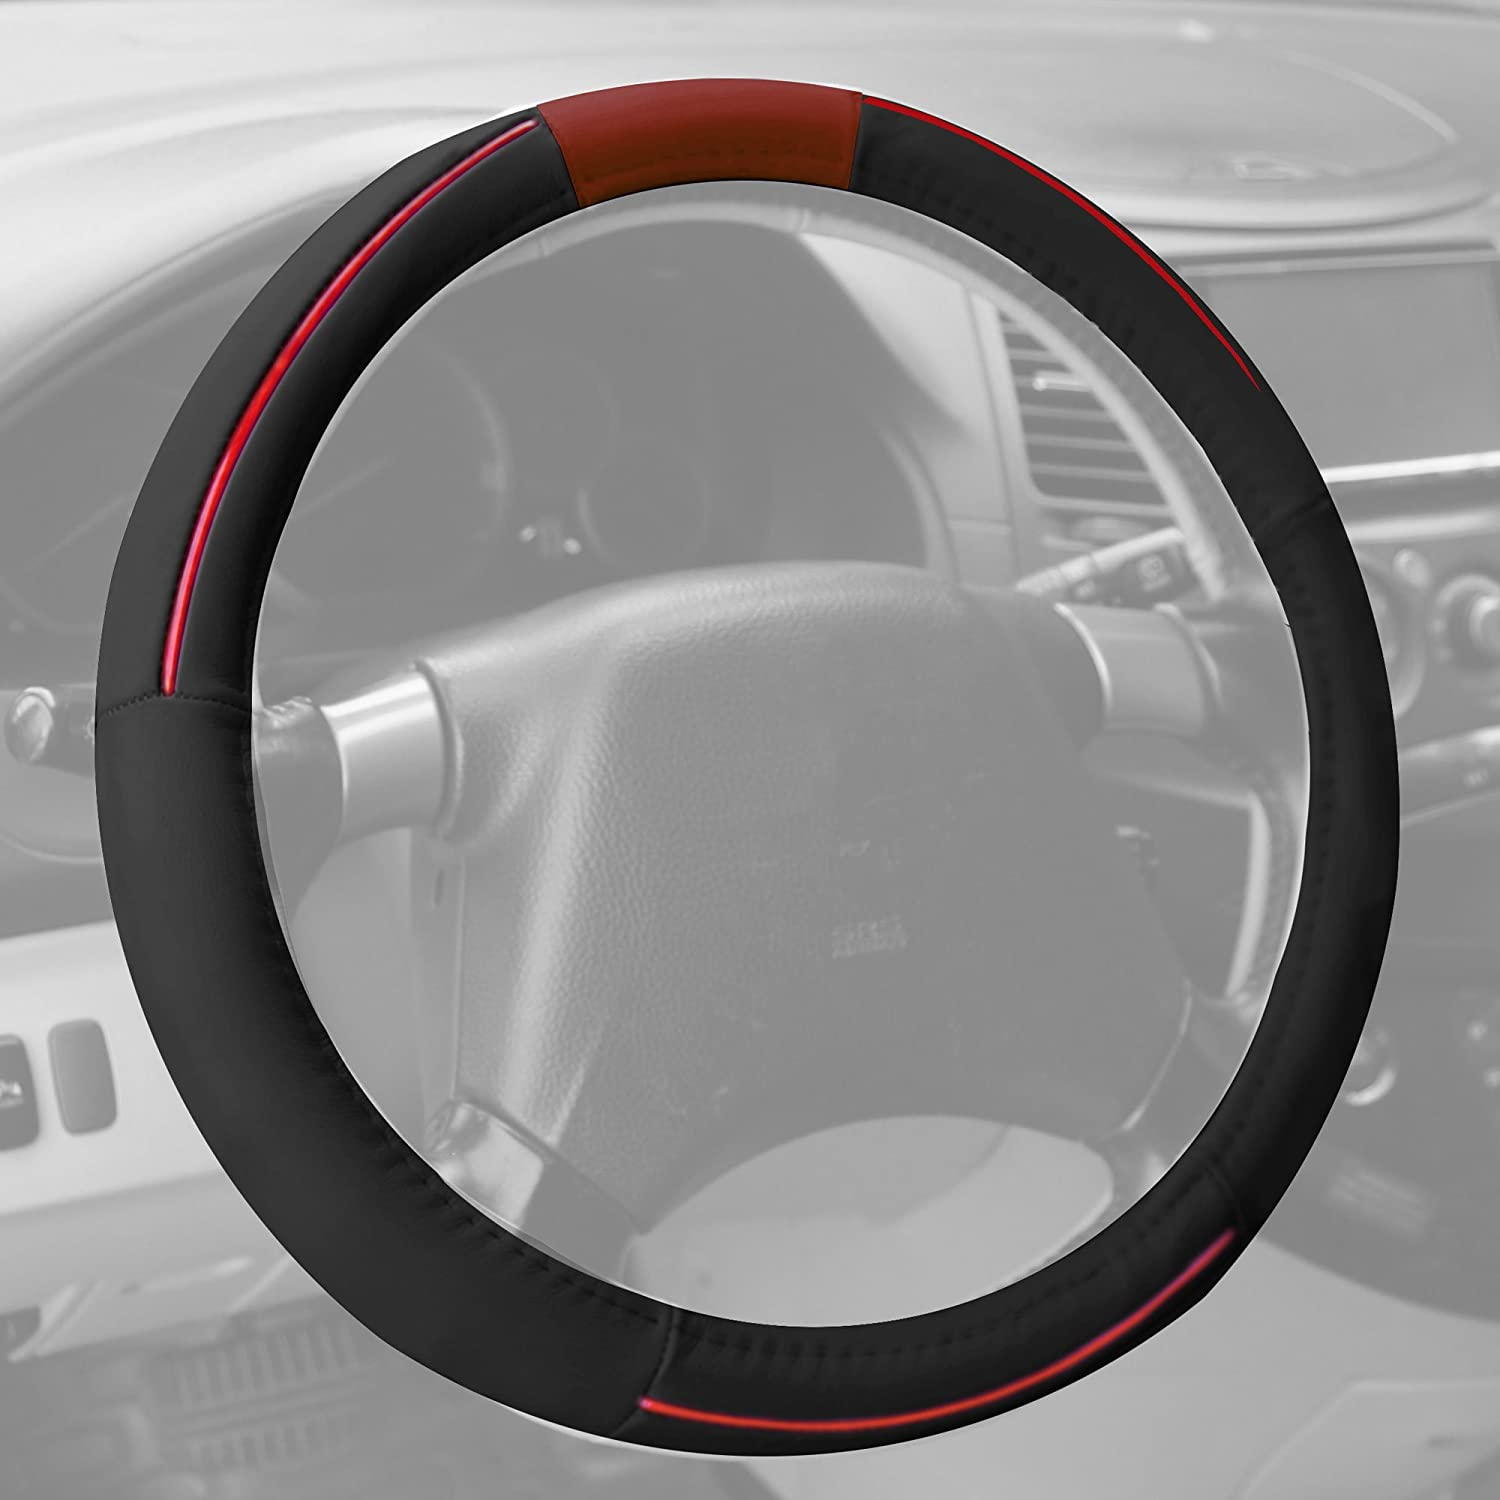 FH-2003 Rubber Molded Top Grain Authentic Leather Steering Wheel Cover Gray FH Group